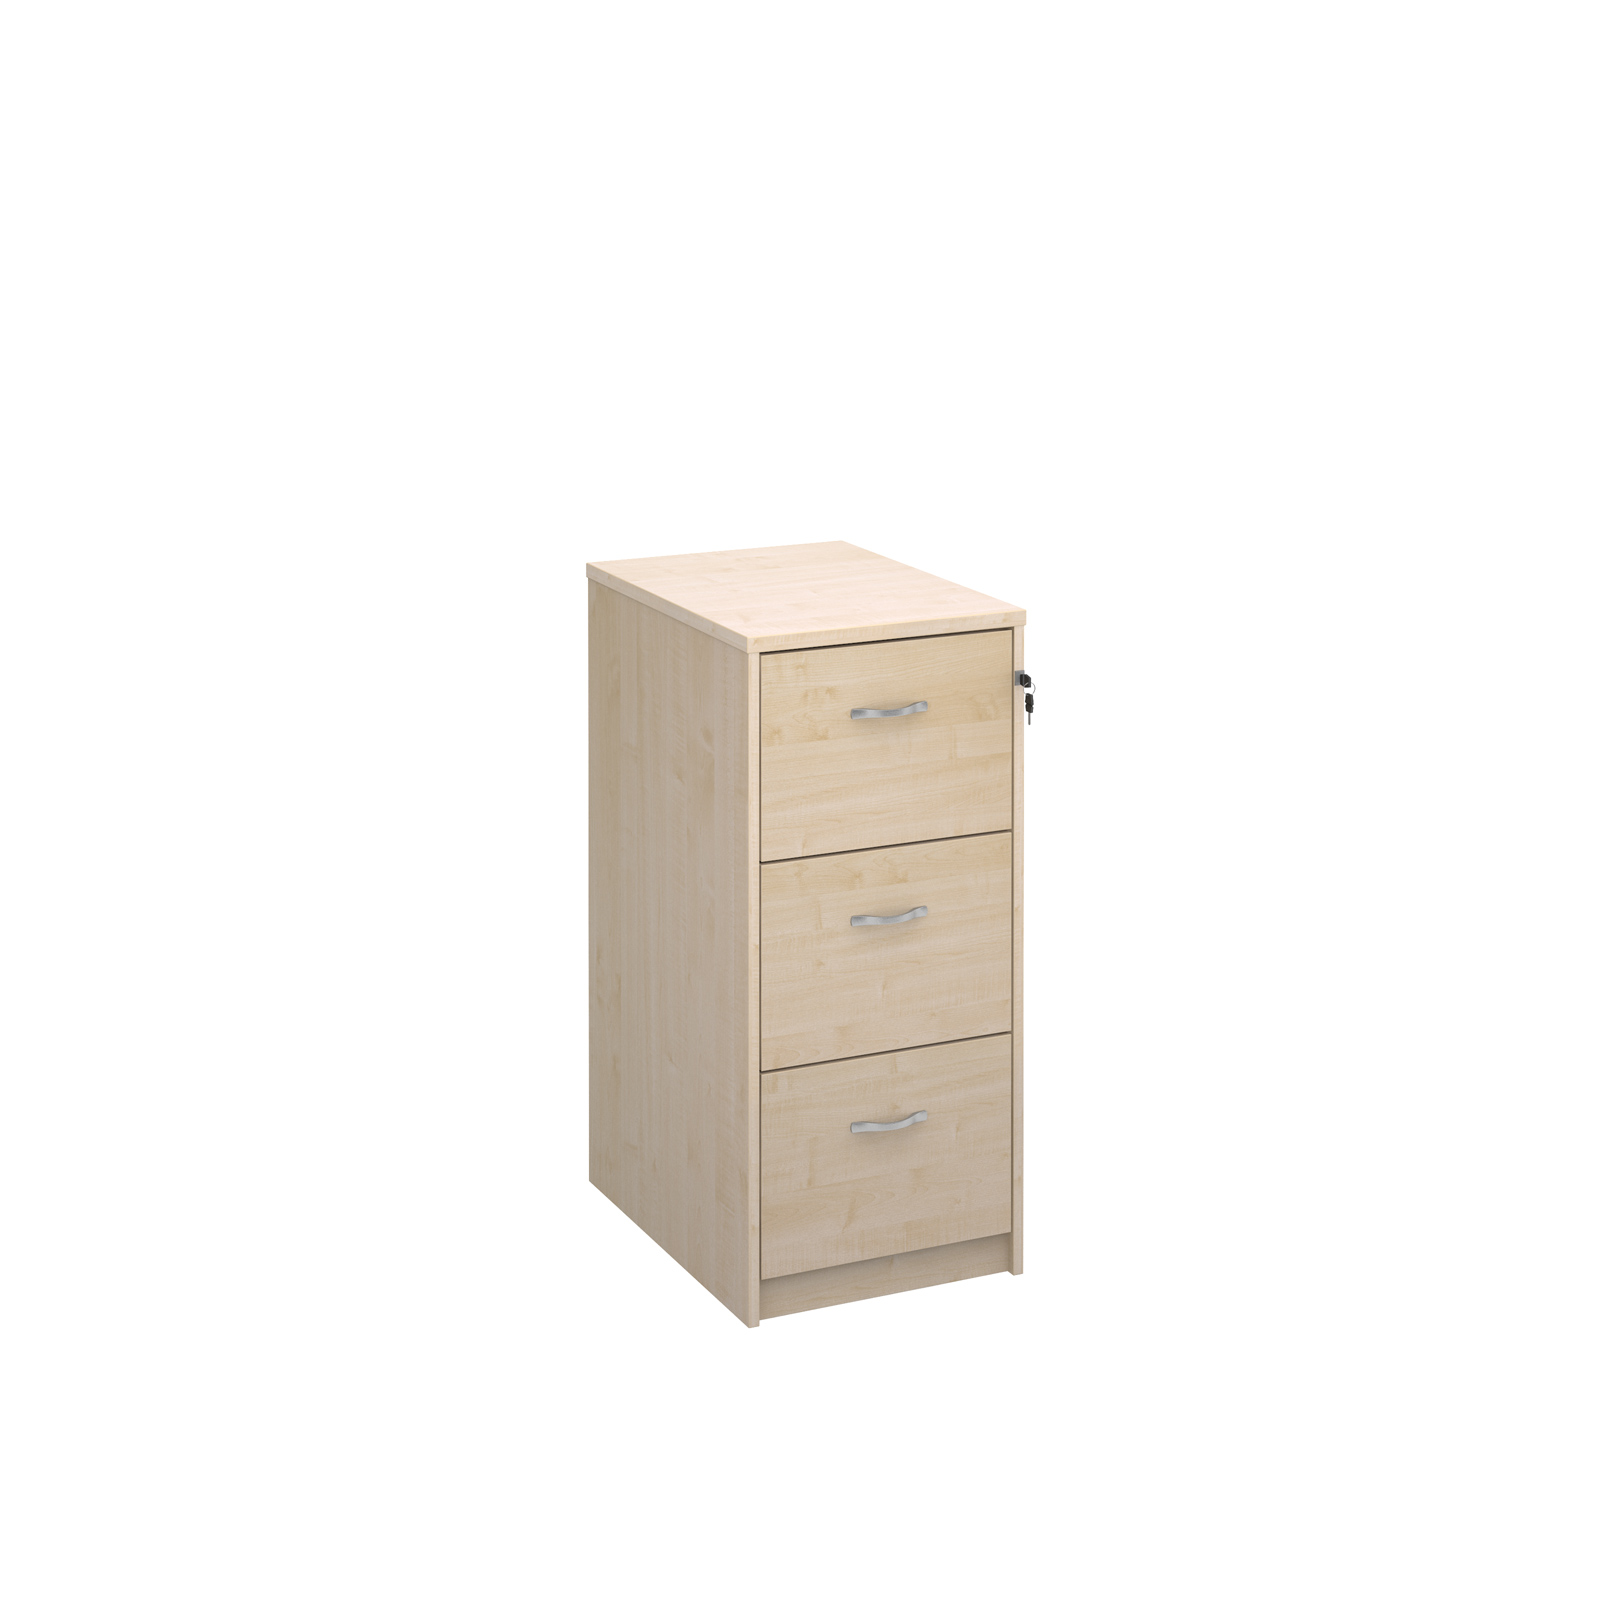 Wooden 3 drawer filing cabinet with silver handles 1045mm high - maple